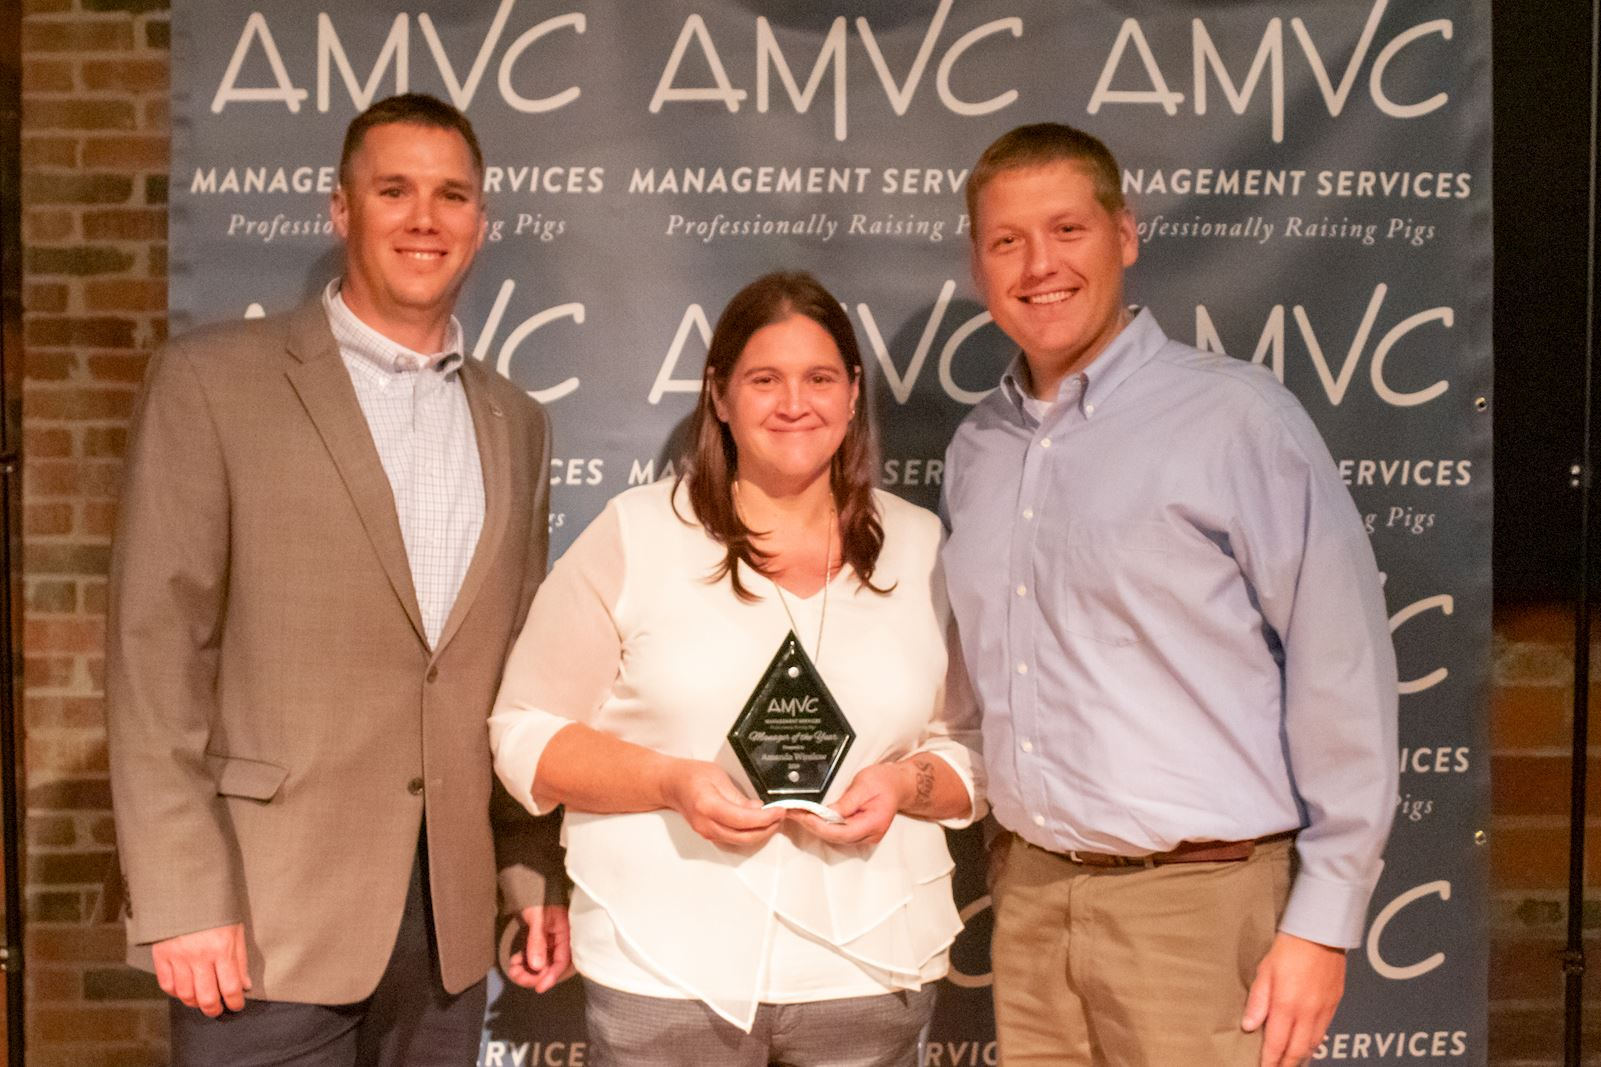 Amanda Winslow AMVC Manager of the Year